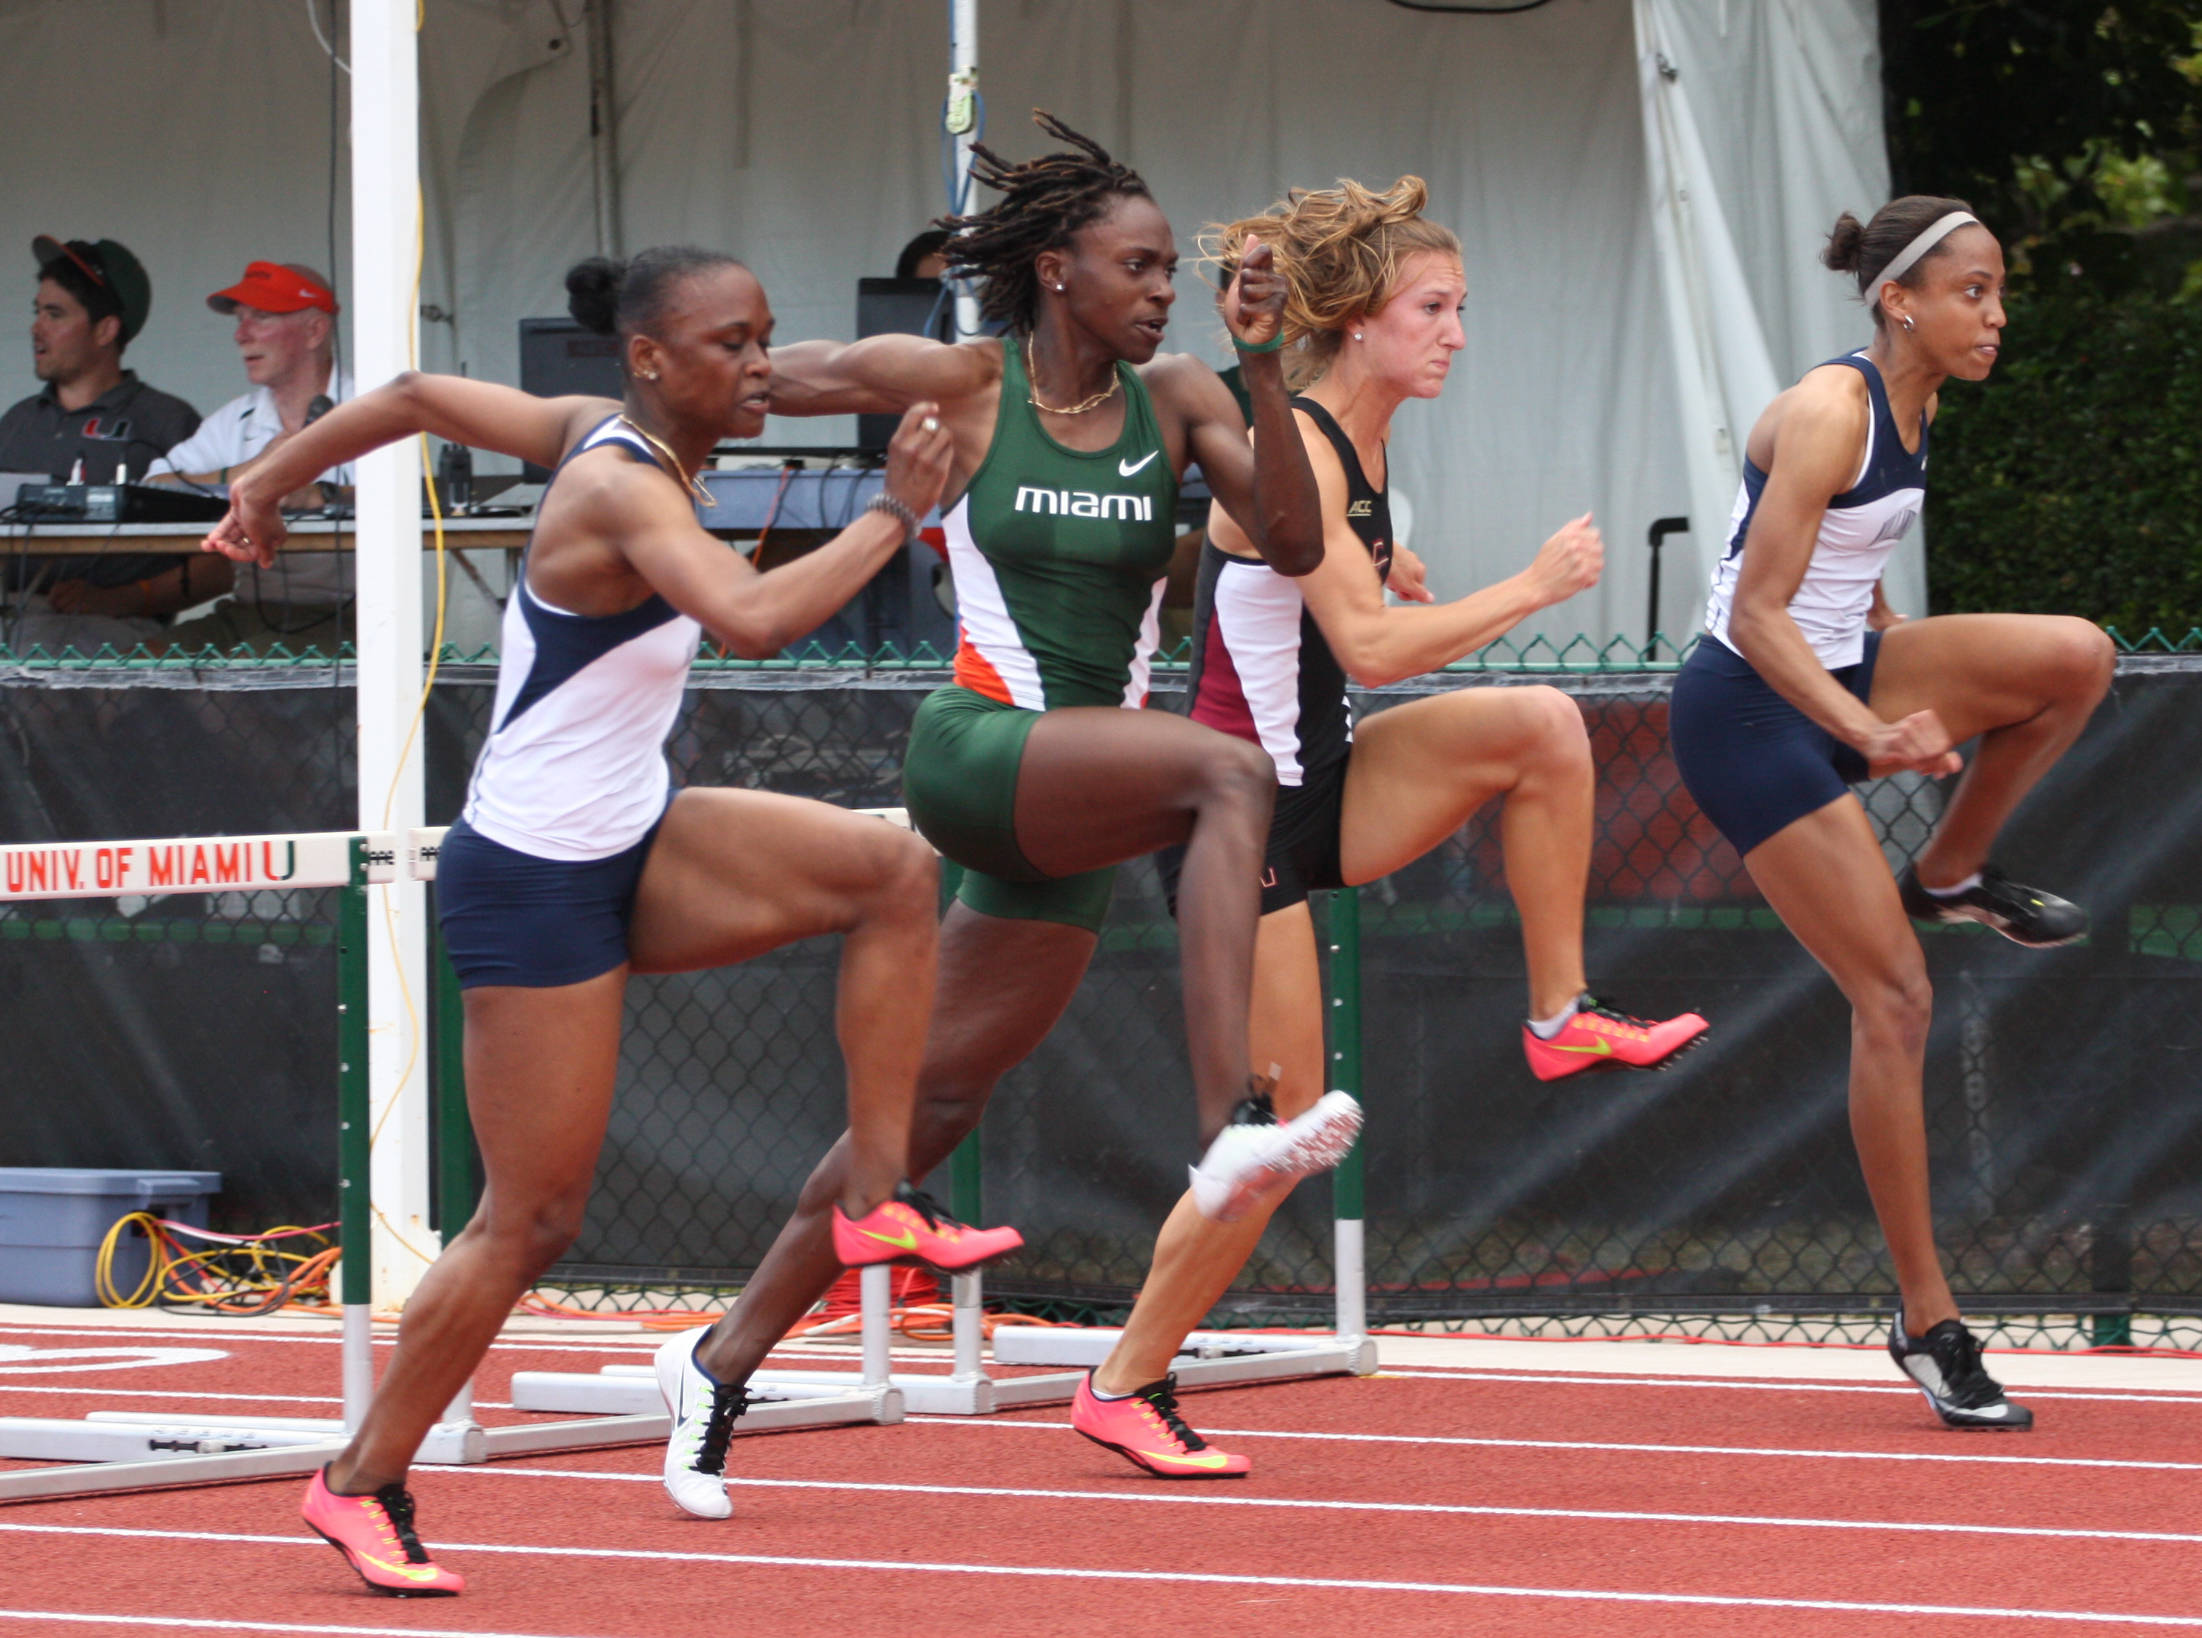 Nicole Setterington, second from right, was 100-meter hurdle runner-up.